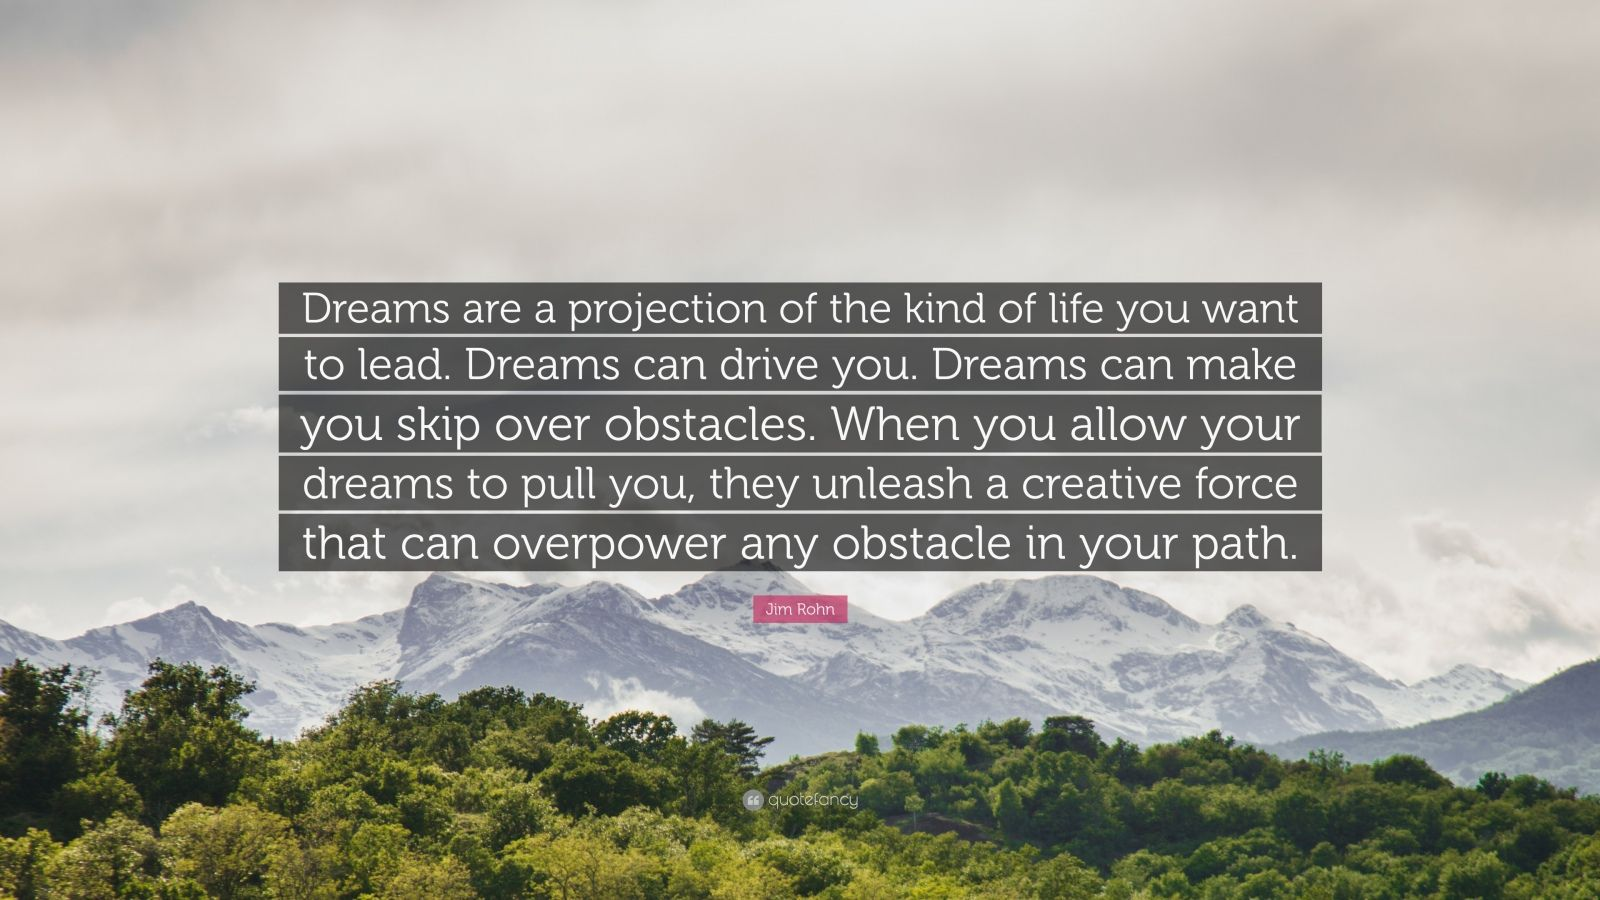 "Jim Rohn Quote: ""Dreams are a projection of the kind of life you want to lead. Dreams can drive you. Dreams can make you skip over obstacles. When you allow your dreams to pull you, they unleash a creative force that can overpower any obstacle in your path."""